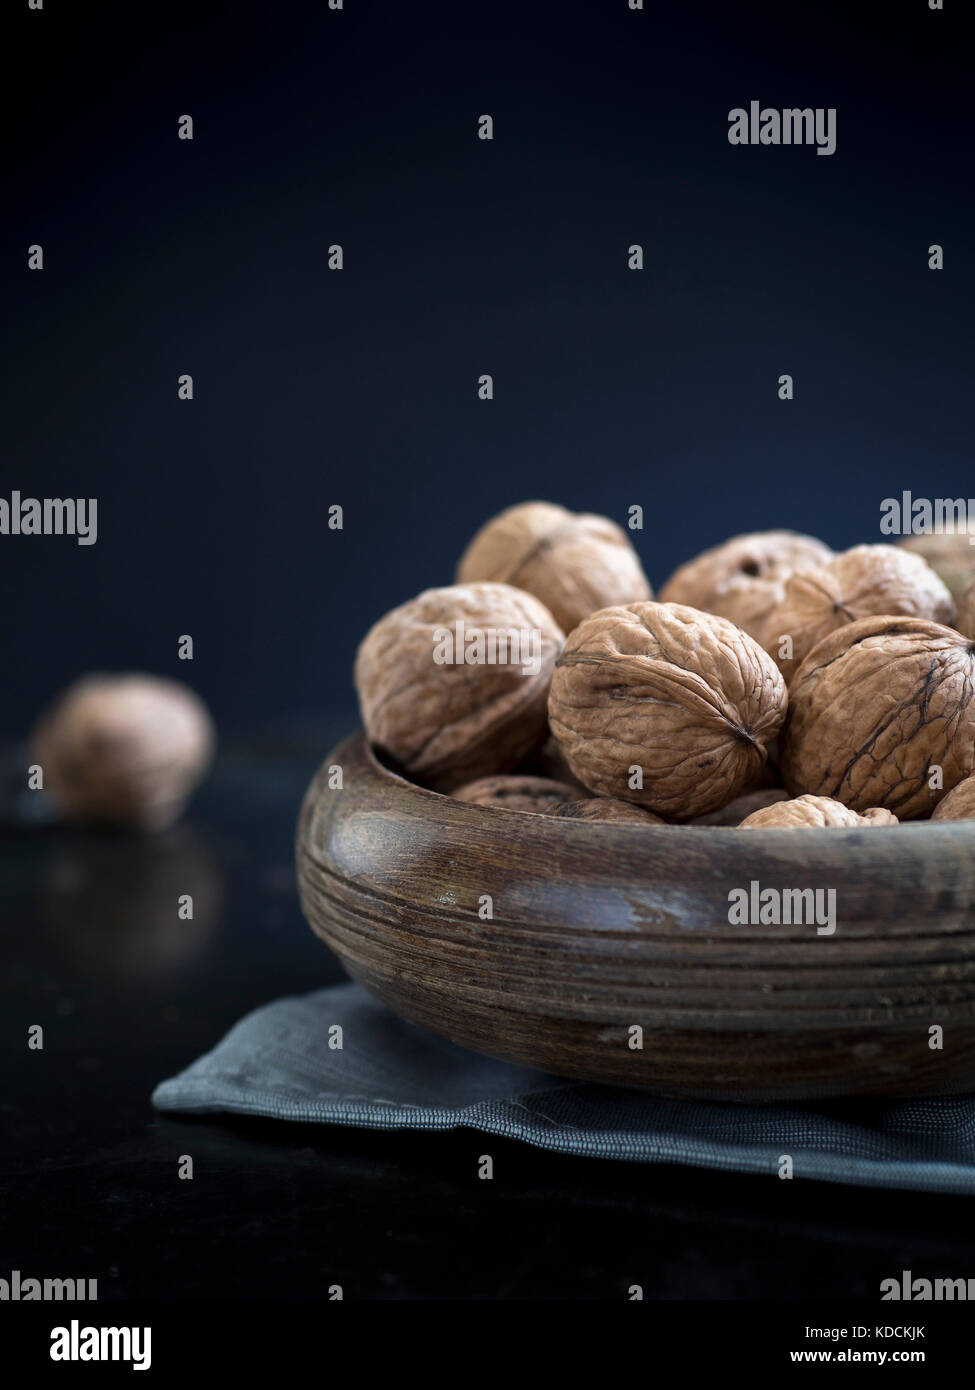 Walnuts in a bowl on a dark background - Stock Image